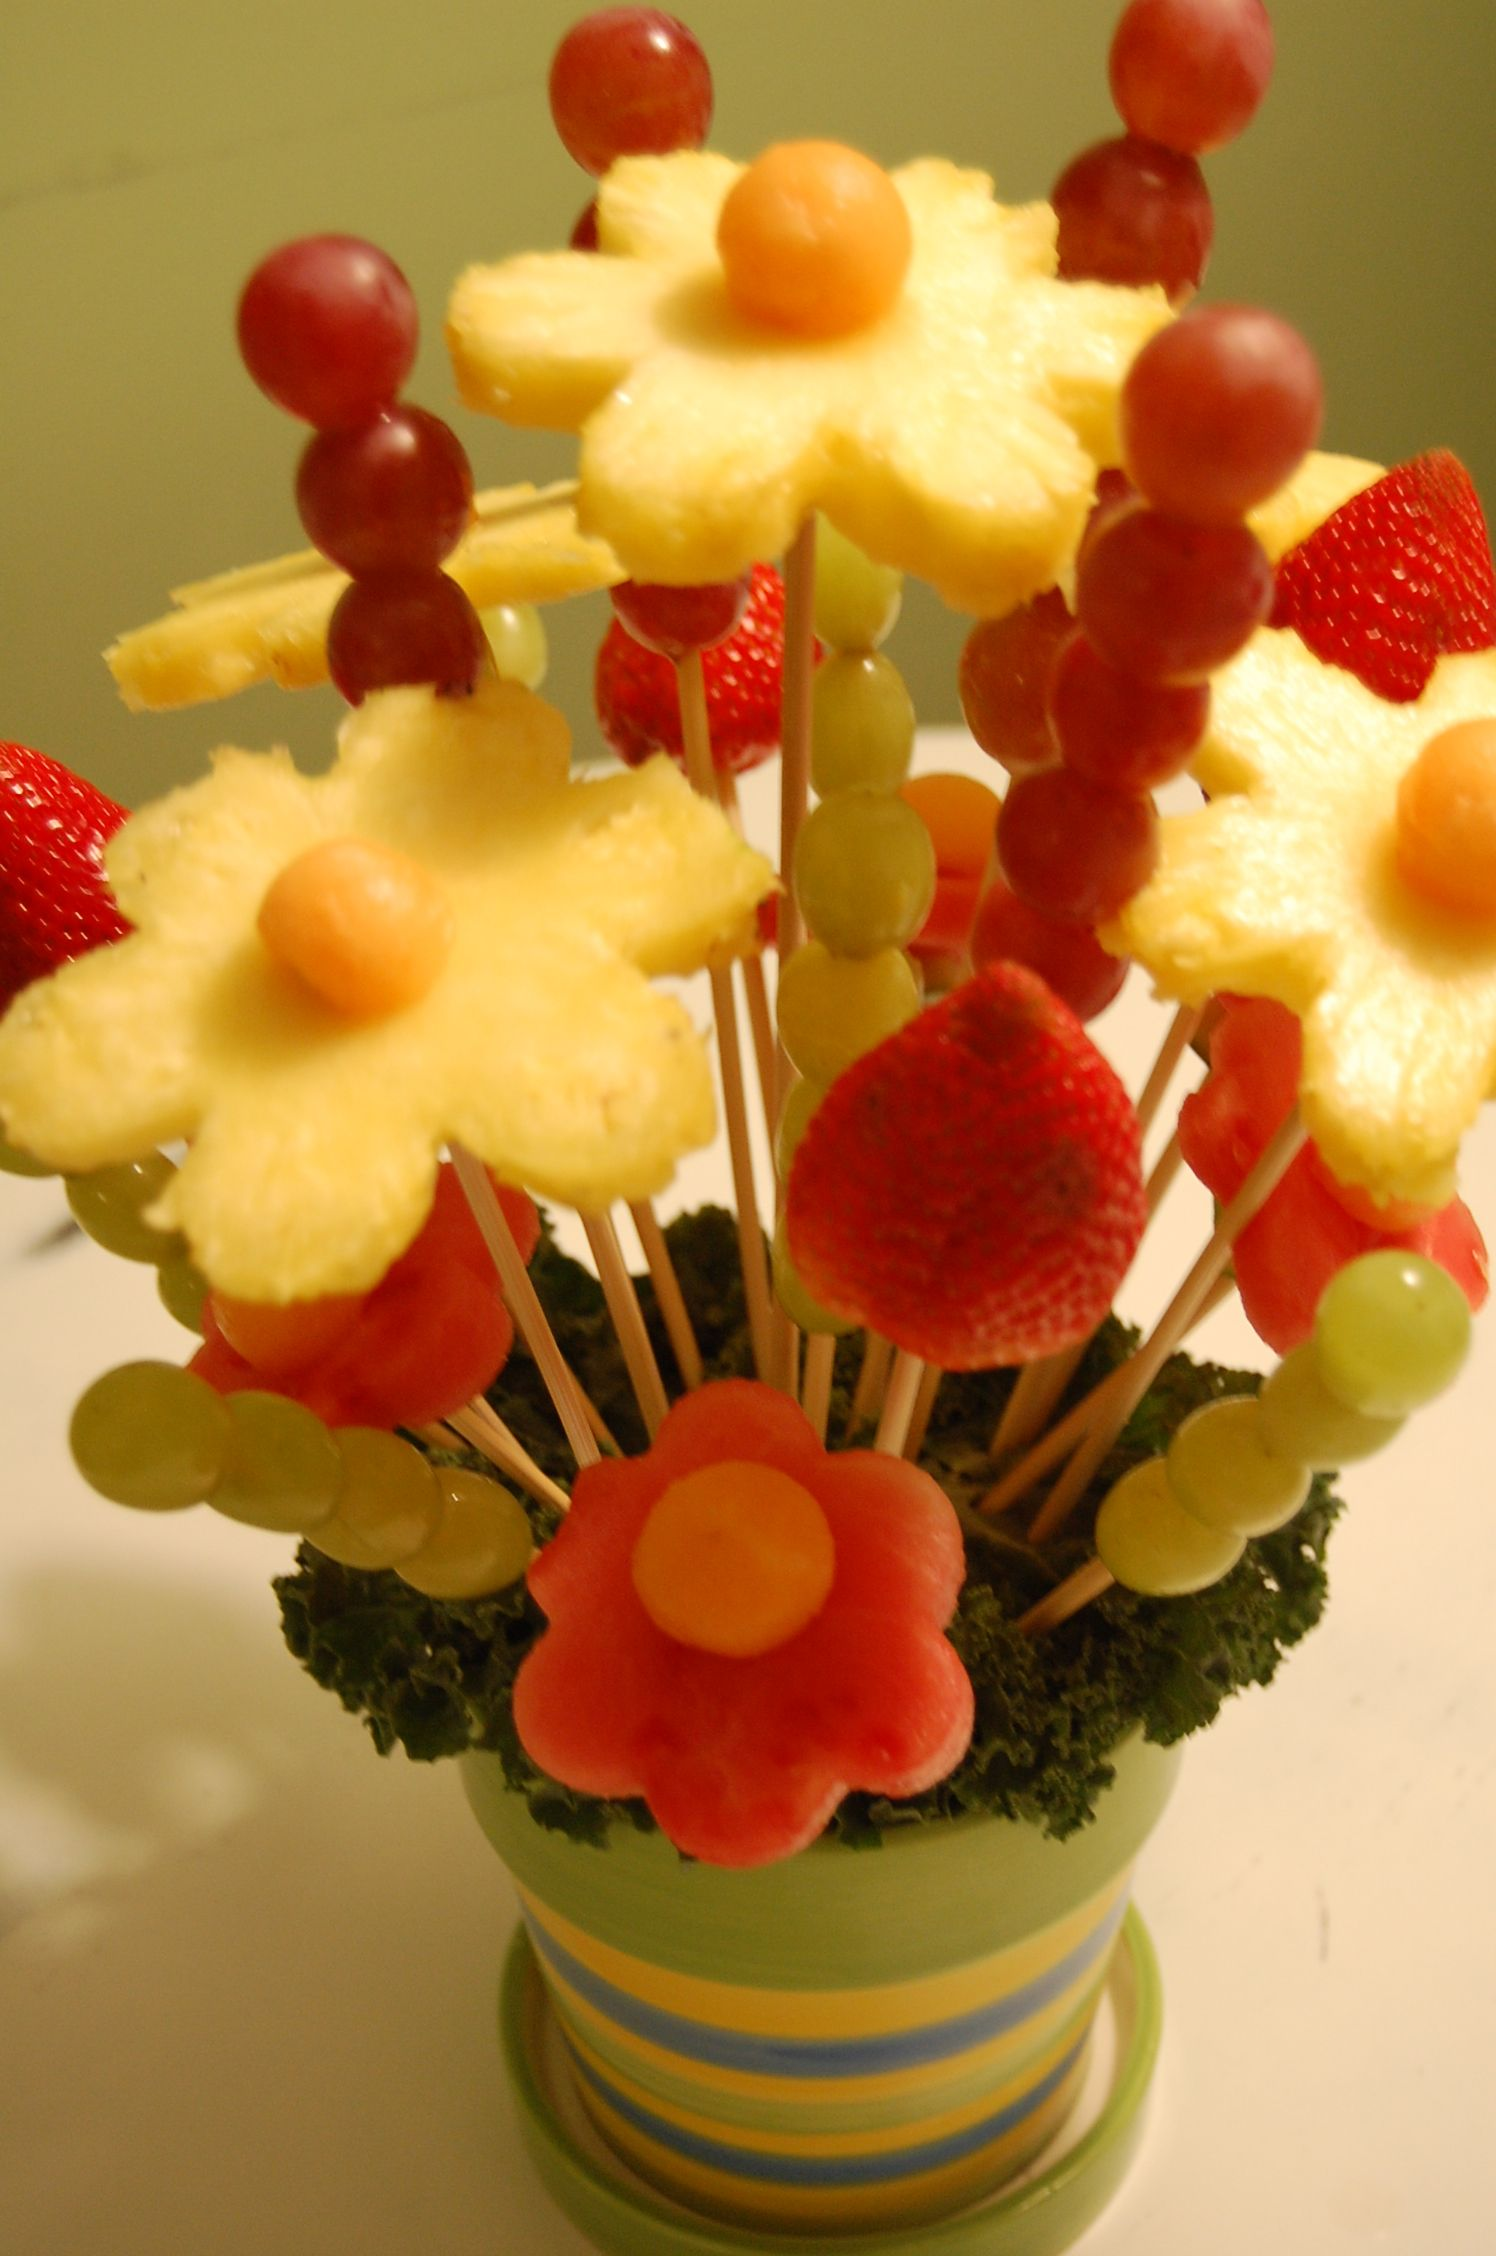 Edible fruit arrangement recipe lettuce leaves edible Floral arrangements with fruit